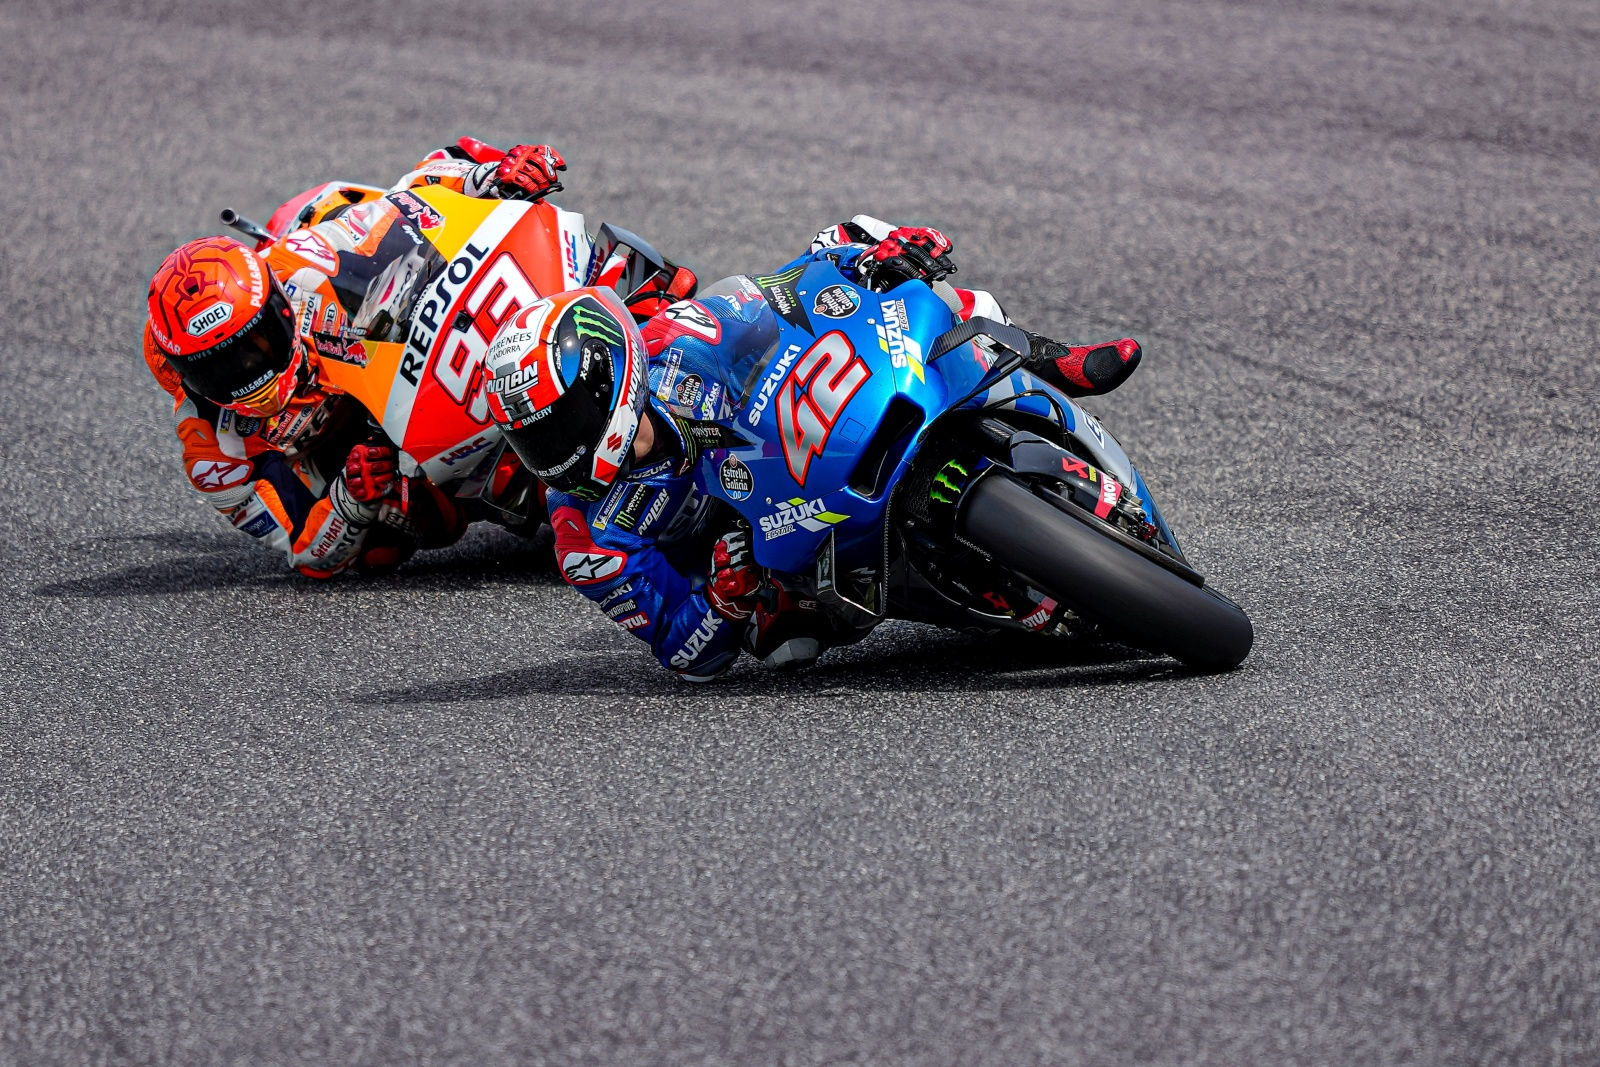 SUZUKI READY TO GET IN THE MIX AT MUGELLO FROM THIRD ROW